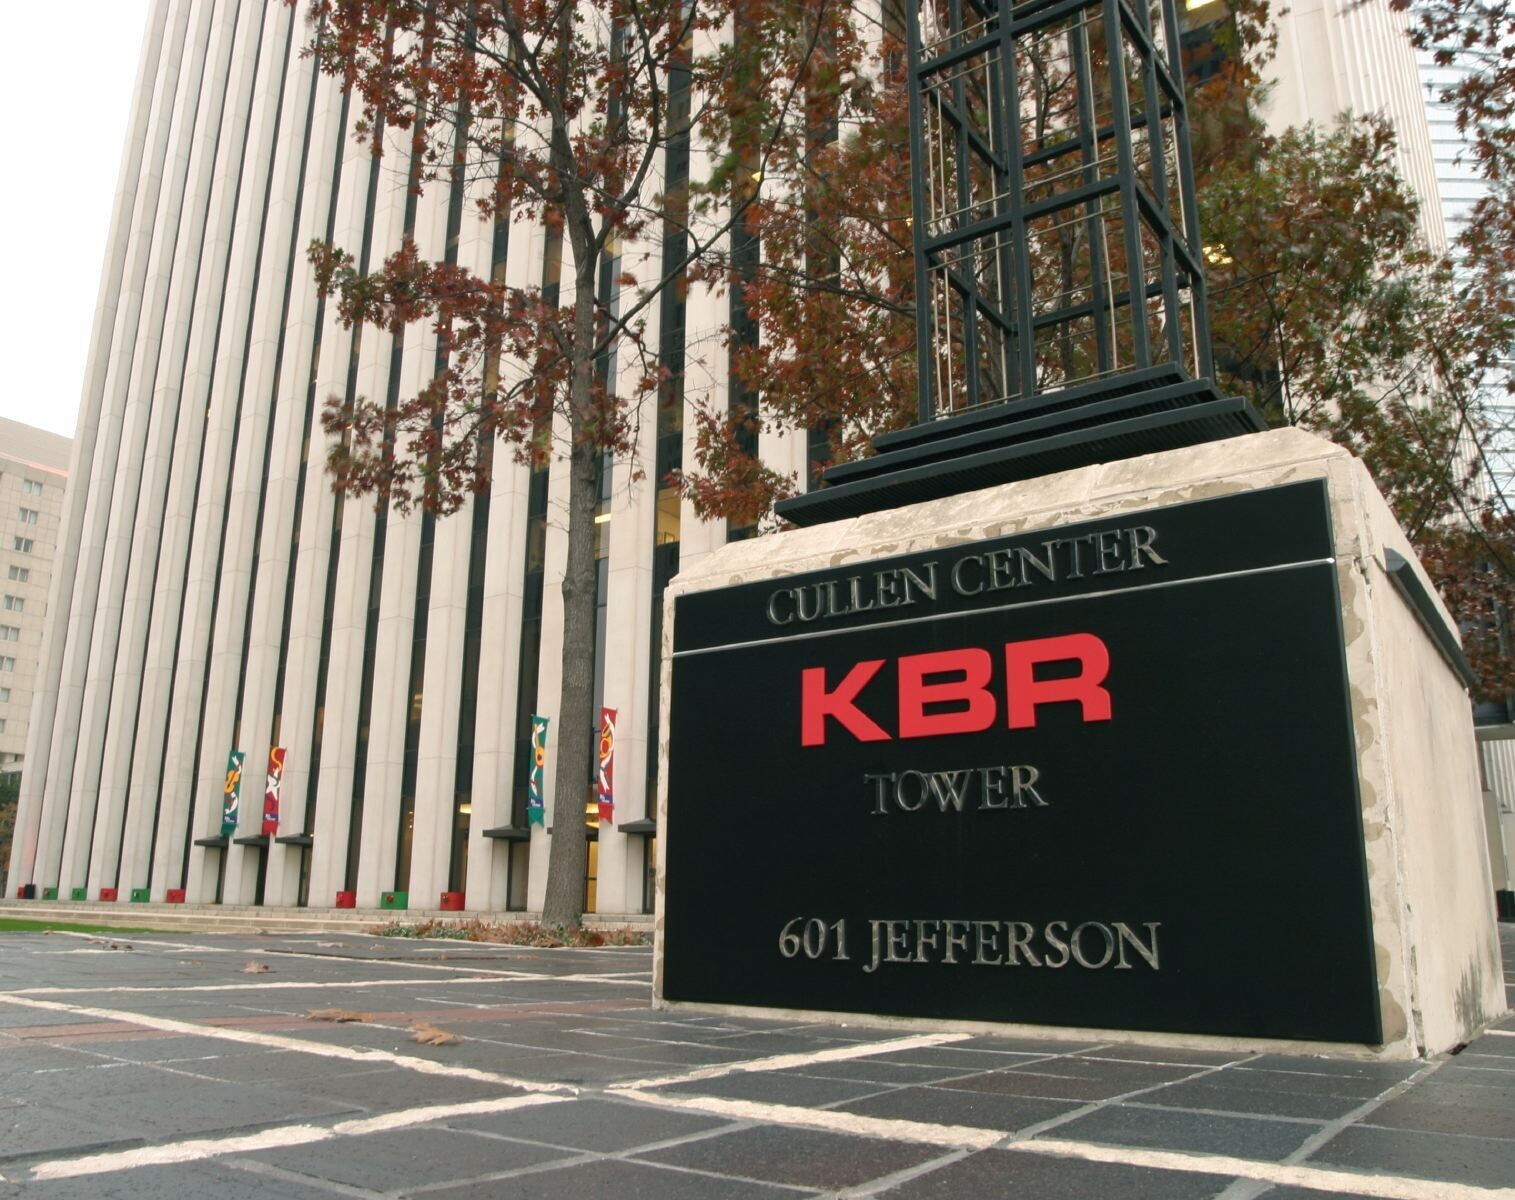 Opinions on KBR (company)